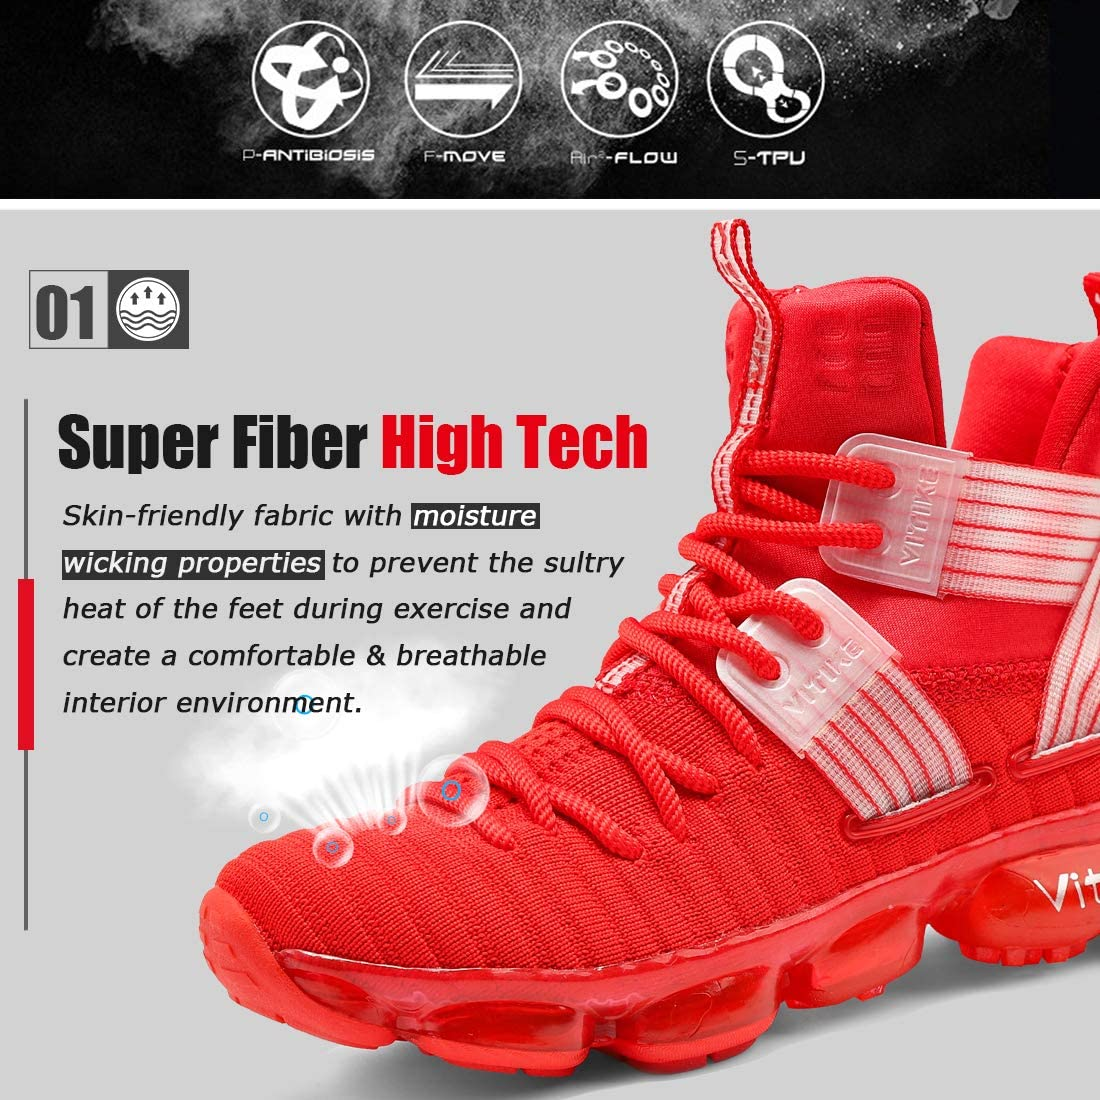 WETIKE Girls Basketball Culture Shoes Air-Cushion Comfortable Casual Fashion Sneakers for Boys Breathable Girls Basketball Shoes Non-Slip High Top Shoes for Boys Shoes Tennis Shoes Size 13 Red